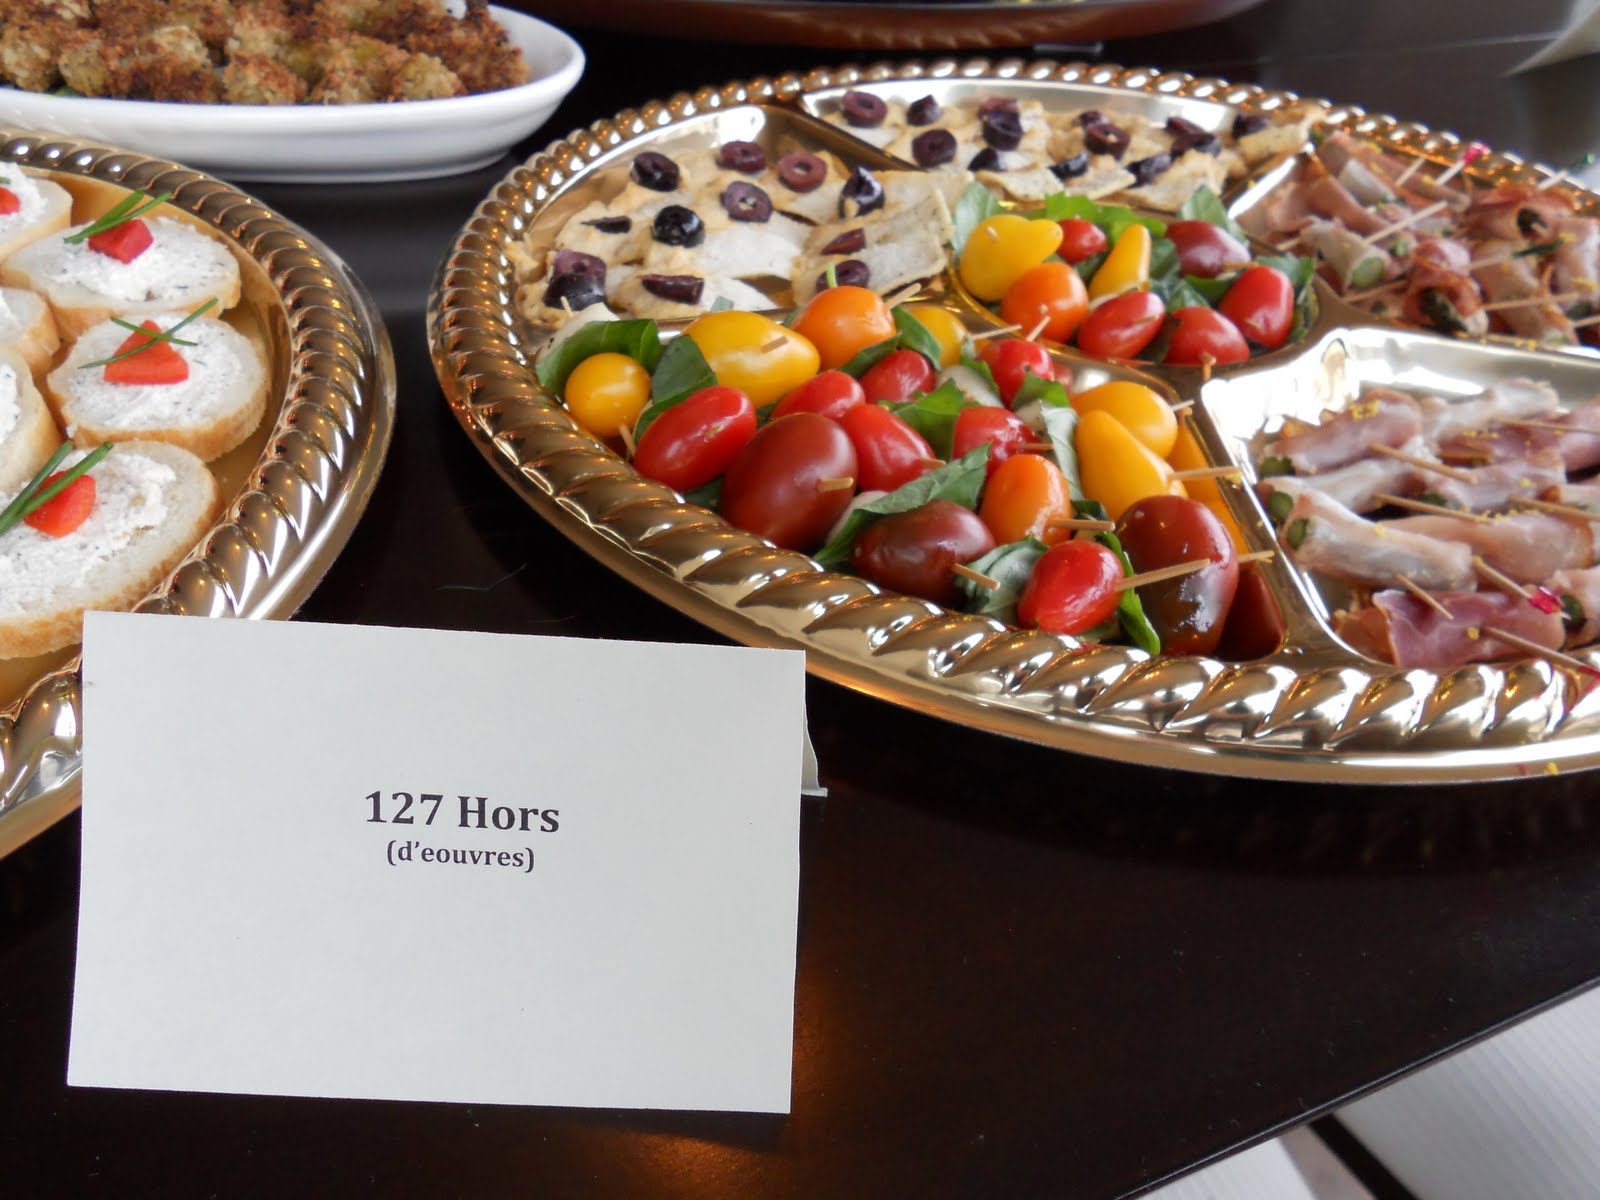 The Polymouth 127 Hors D Oeuvres Dish Made For 127 Hours For The 2011 Oscar Party